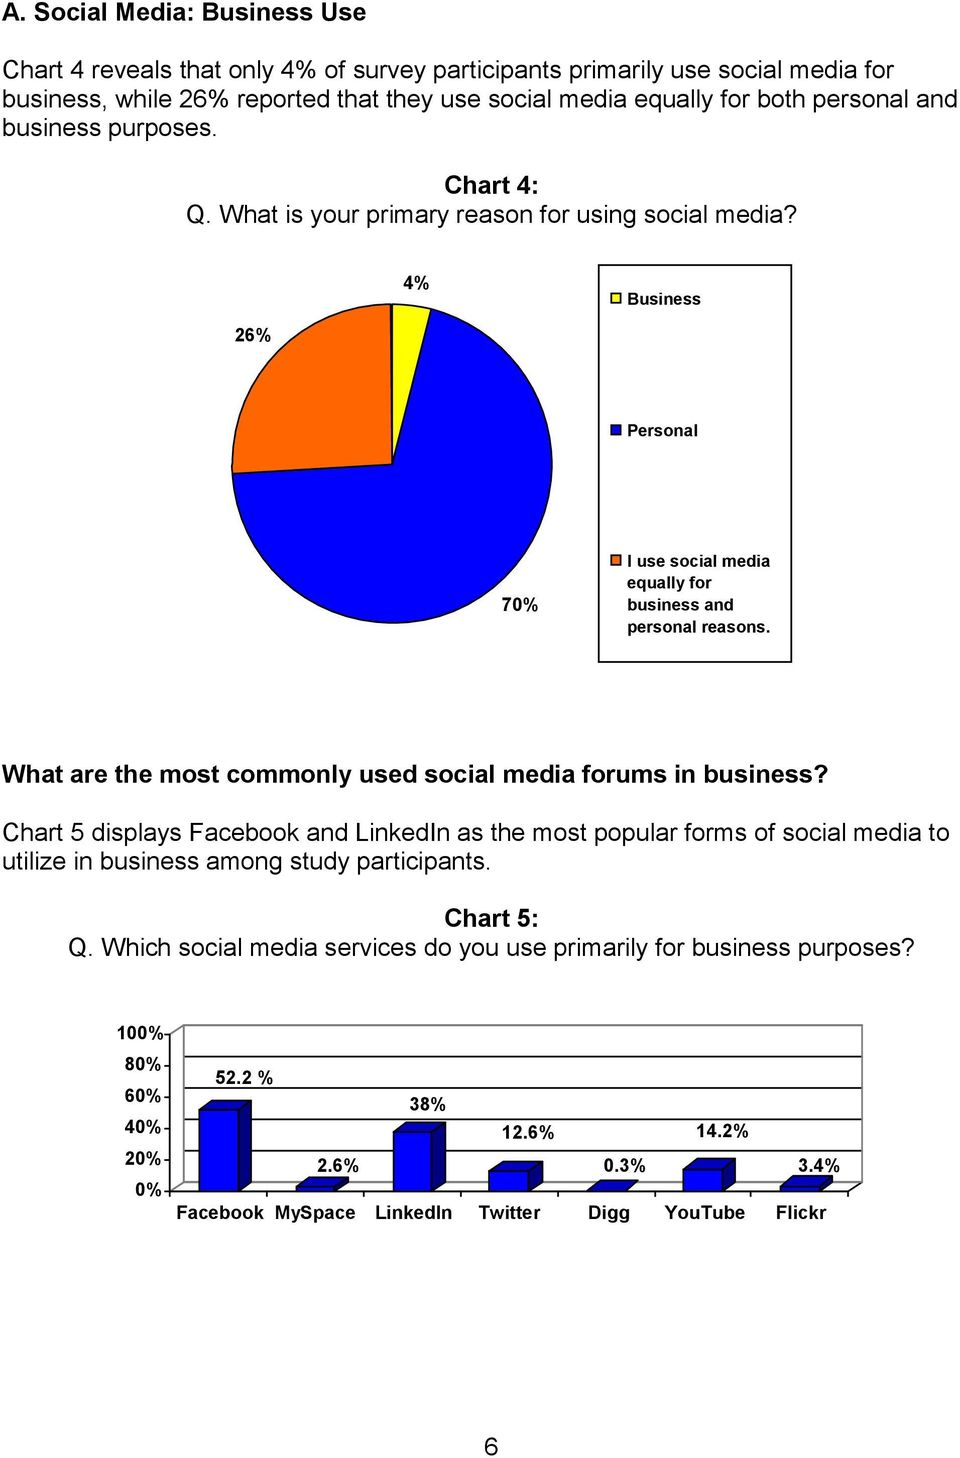 What are the most commonly used social media forums in business?